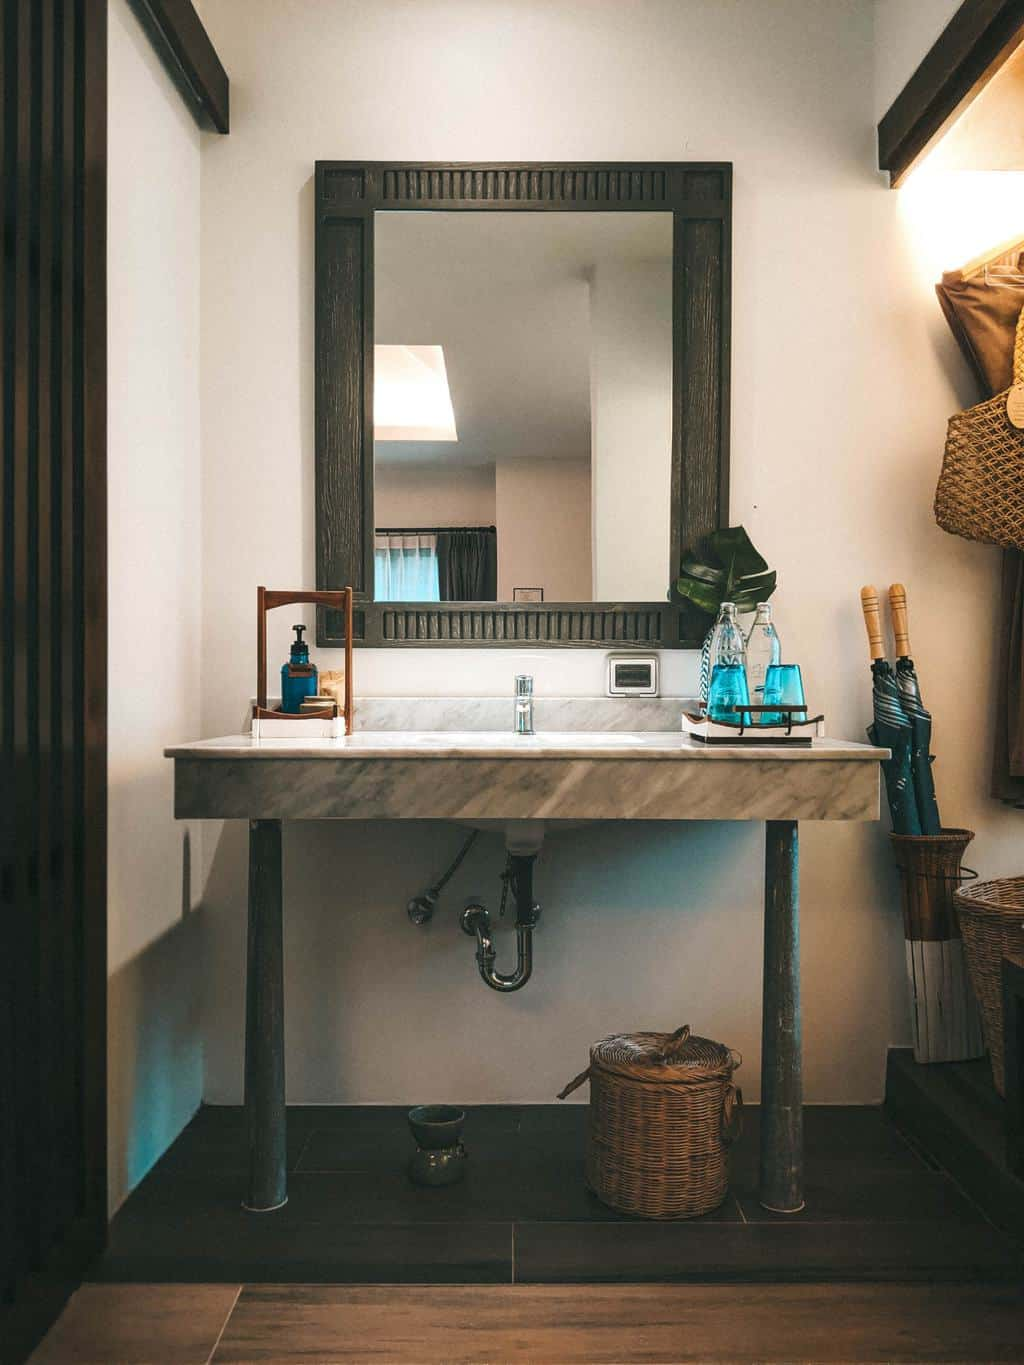 a stylish basin and mirror in a bathroom, spas in thailand, wellness tourism